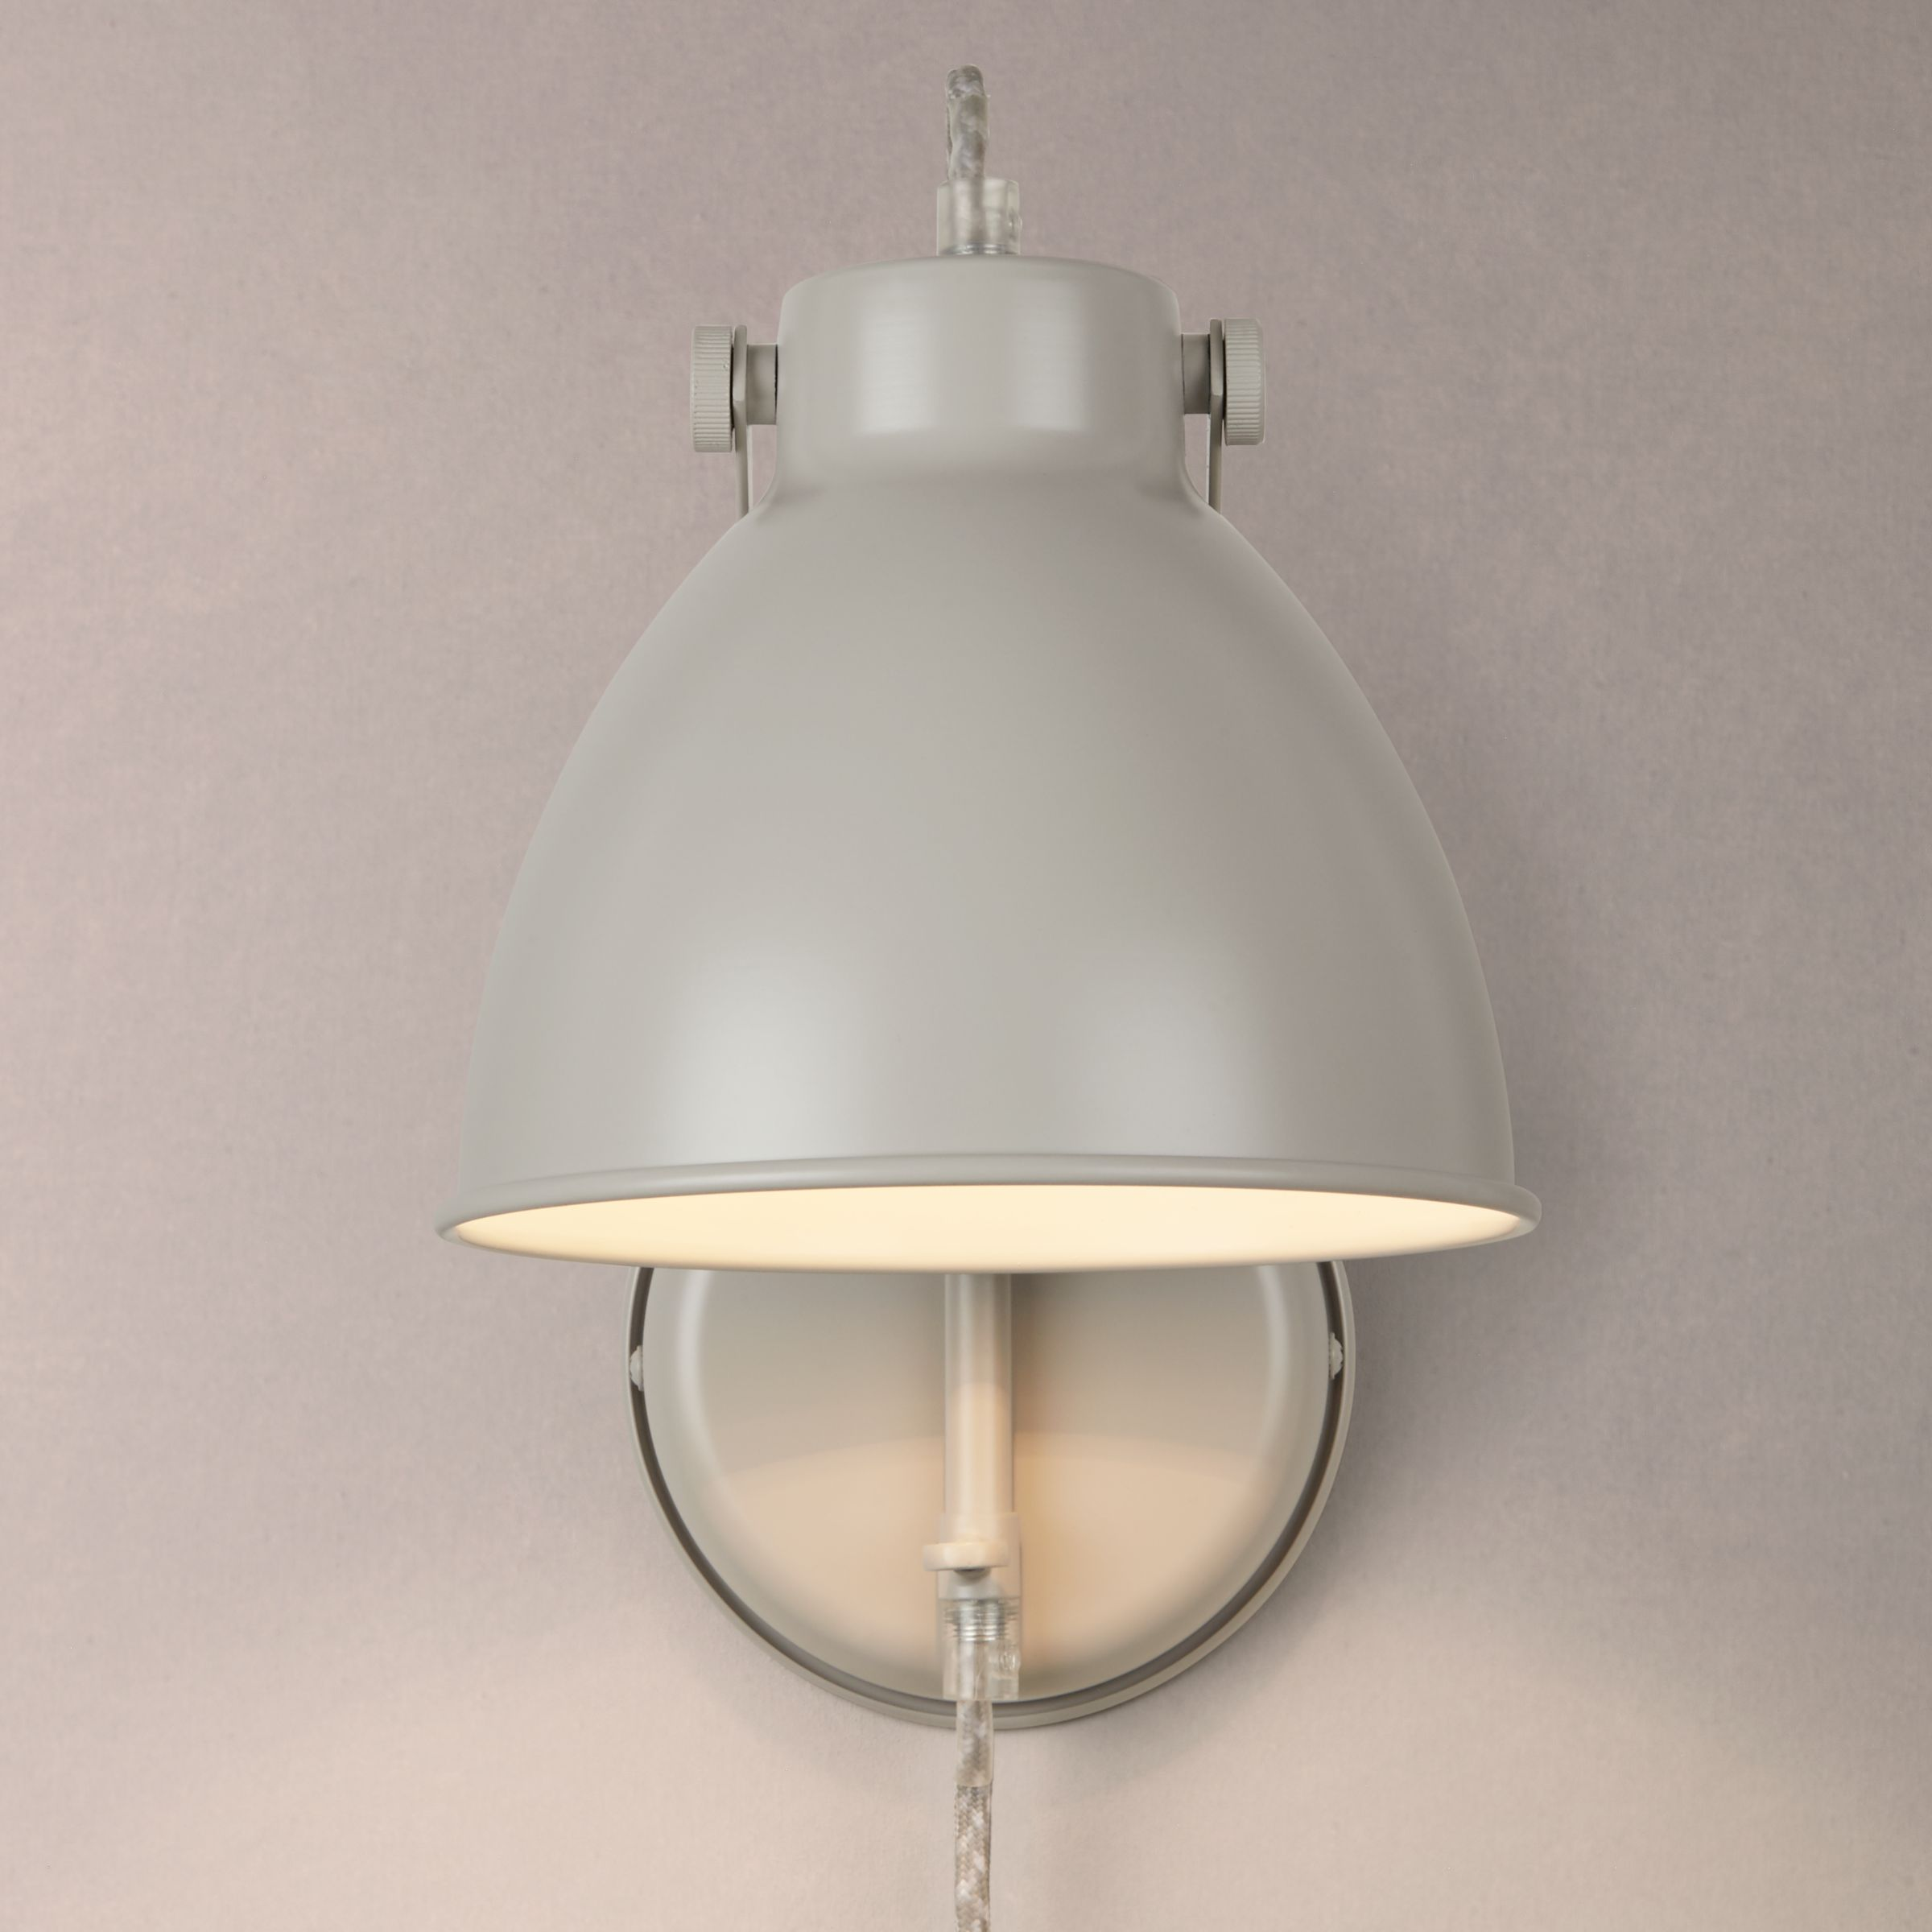 Wall Light With Cable : Buy John Lewis Norton Stone with Cable Wall Light, Grey John Lewis